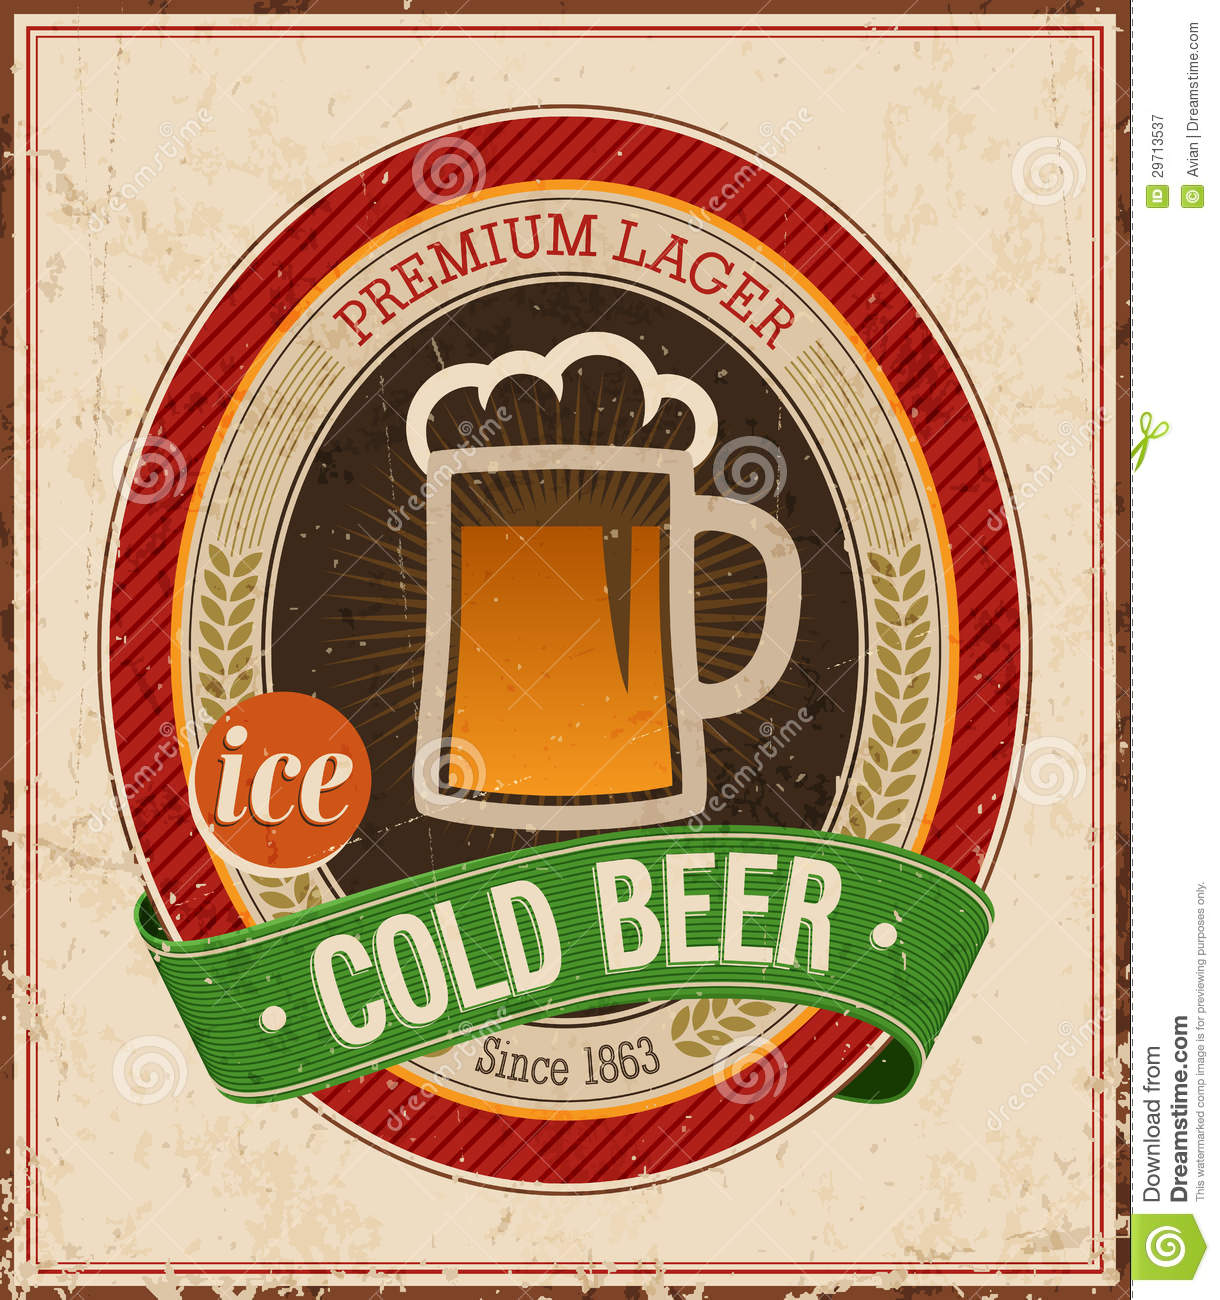 Decoration Restaurant Vintage Vintage Cold Beer Poster Royalty Free Stock Photography